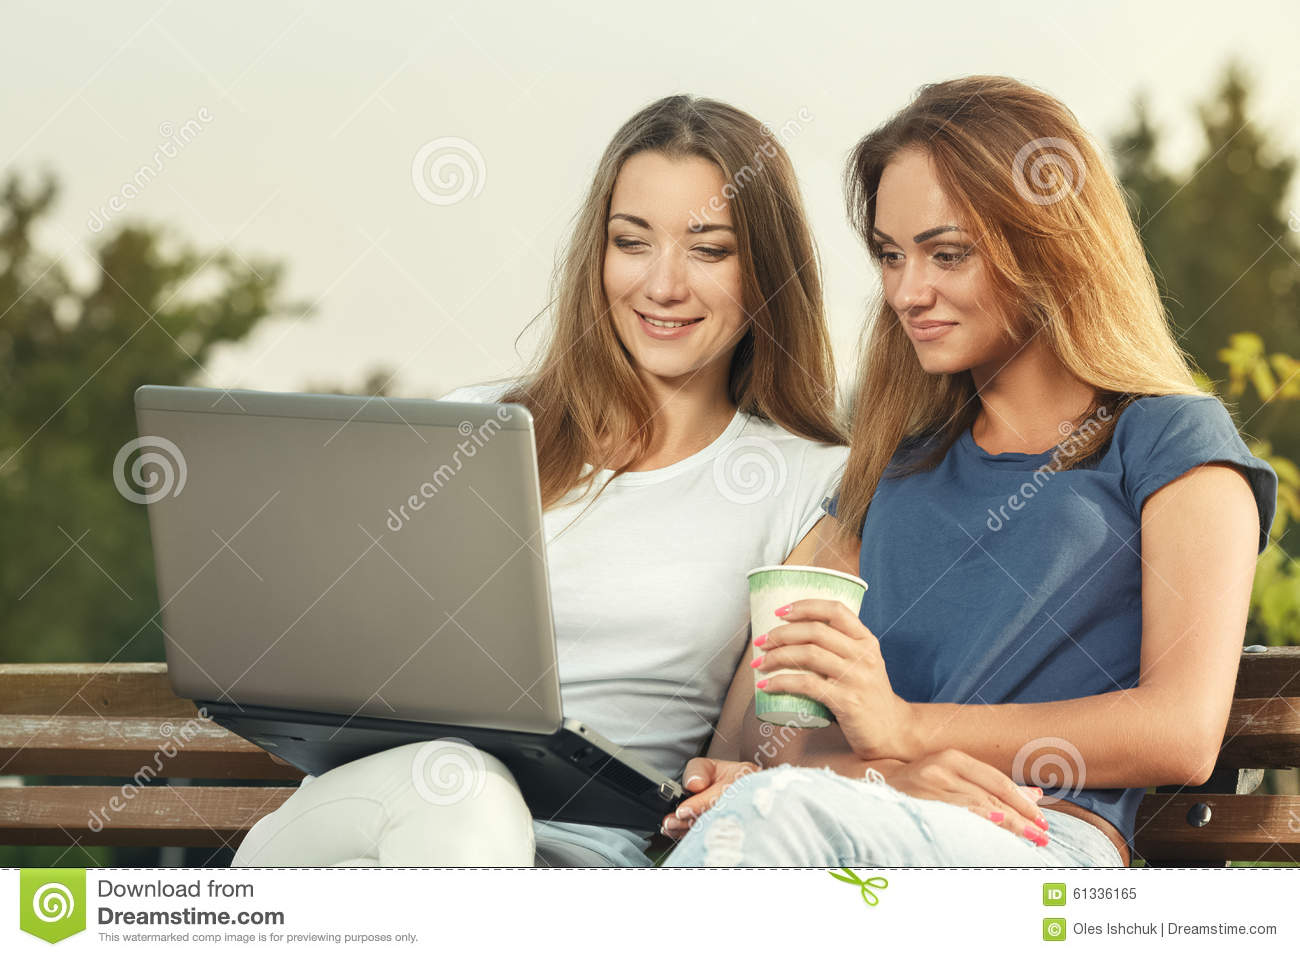 two sisters in everyday use Two sisters in everyday use essays: over 180,000 two sisters in everyday use essays, two sisters in everyday use term papers, two sisters in everyday use research paper, book reports 184 990 essays, term and research papers available for unlimited access.